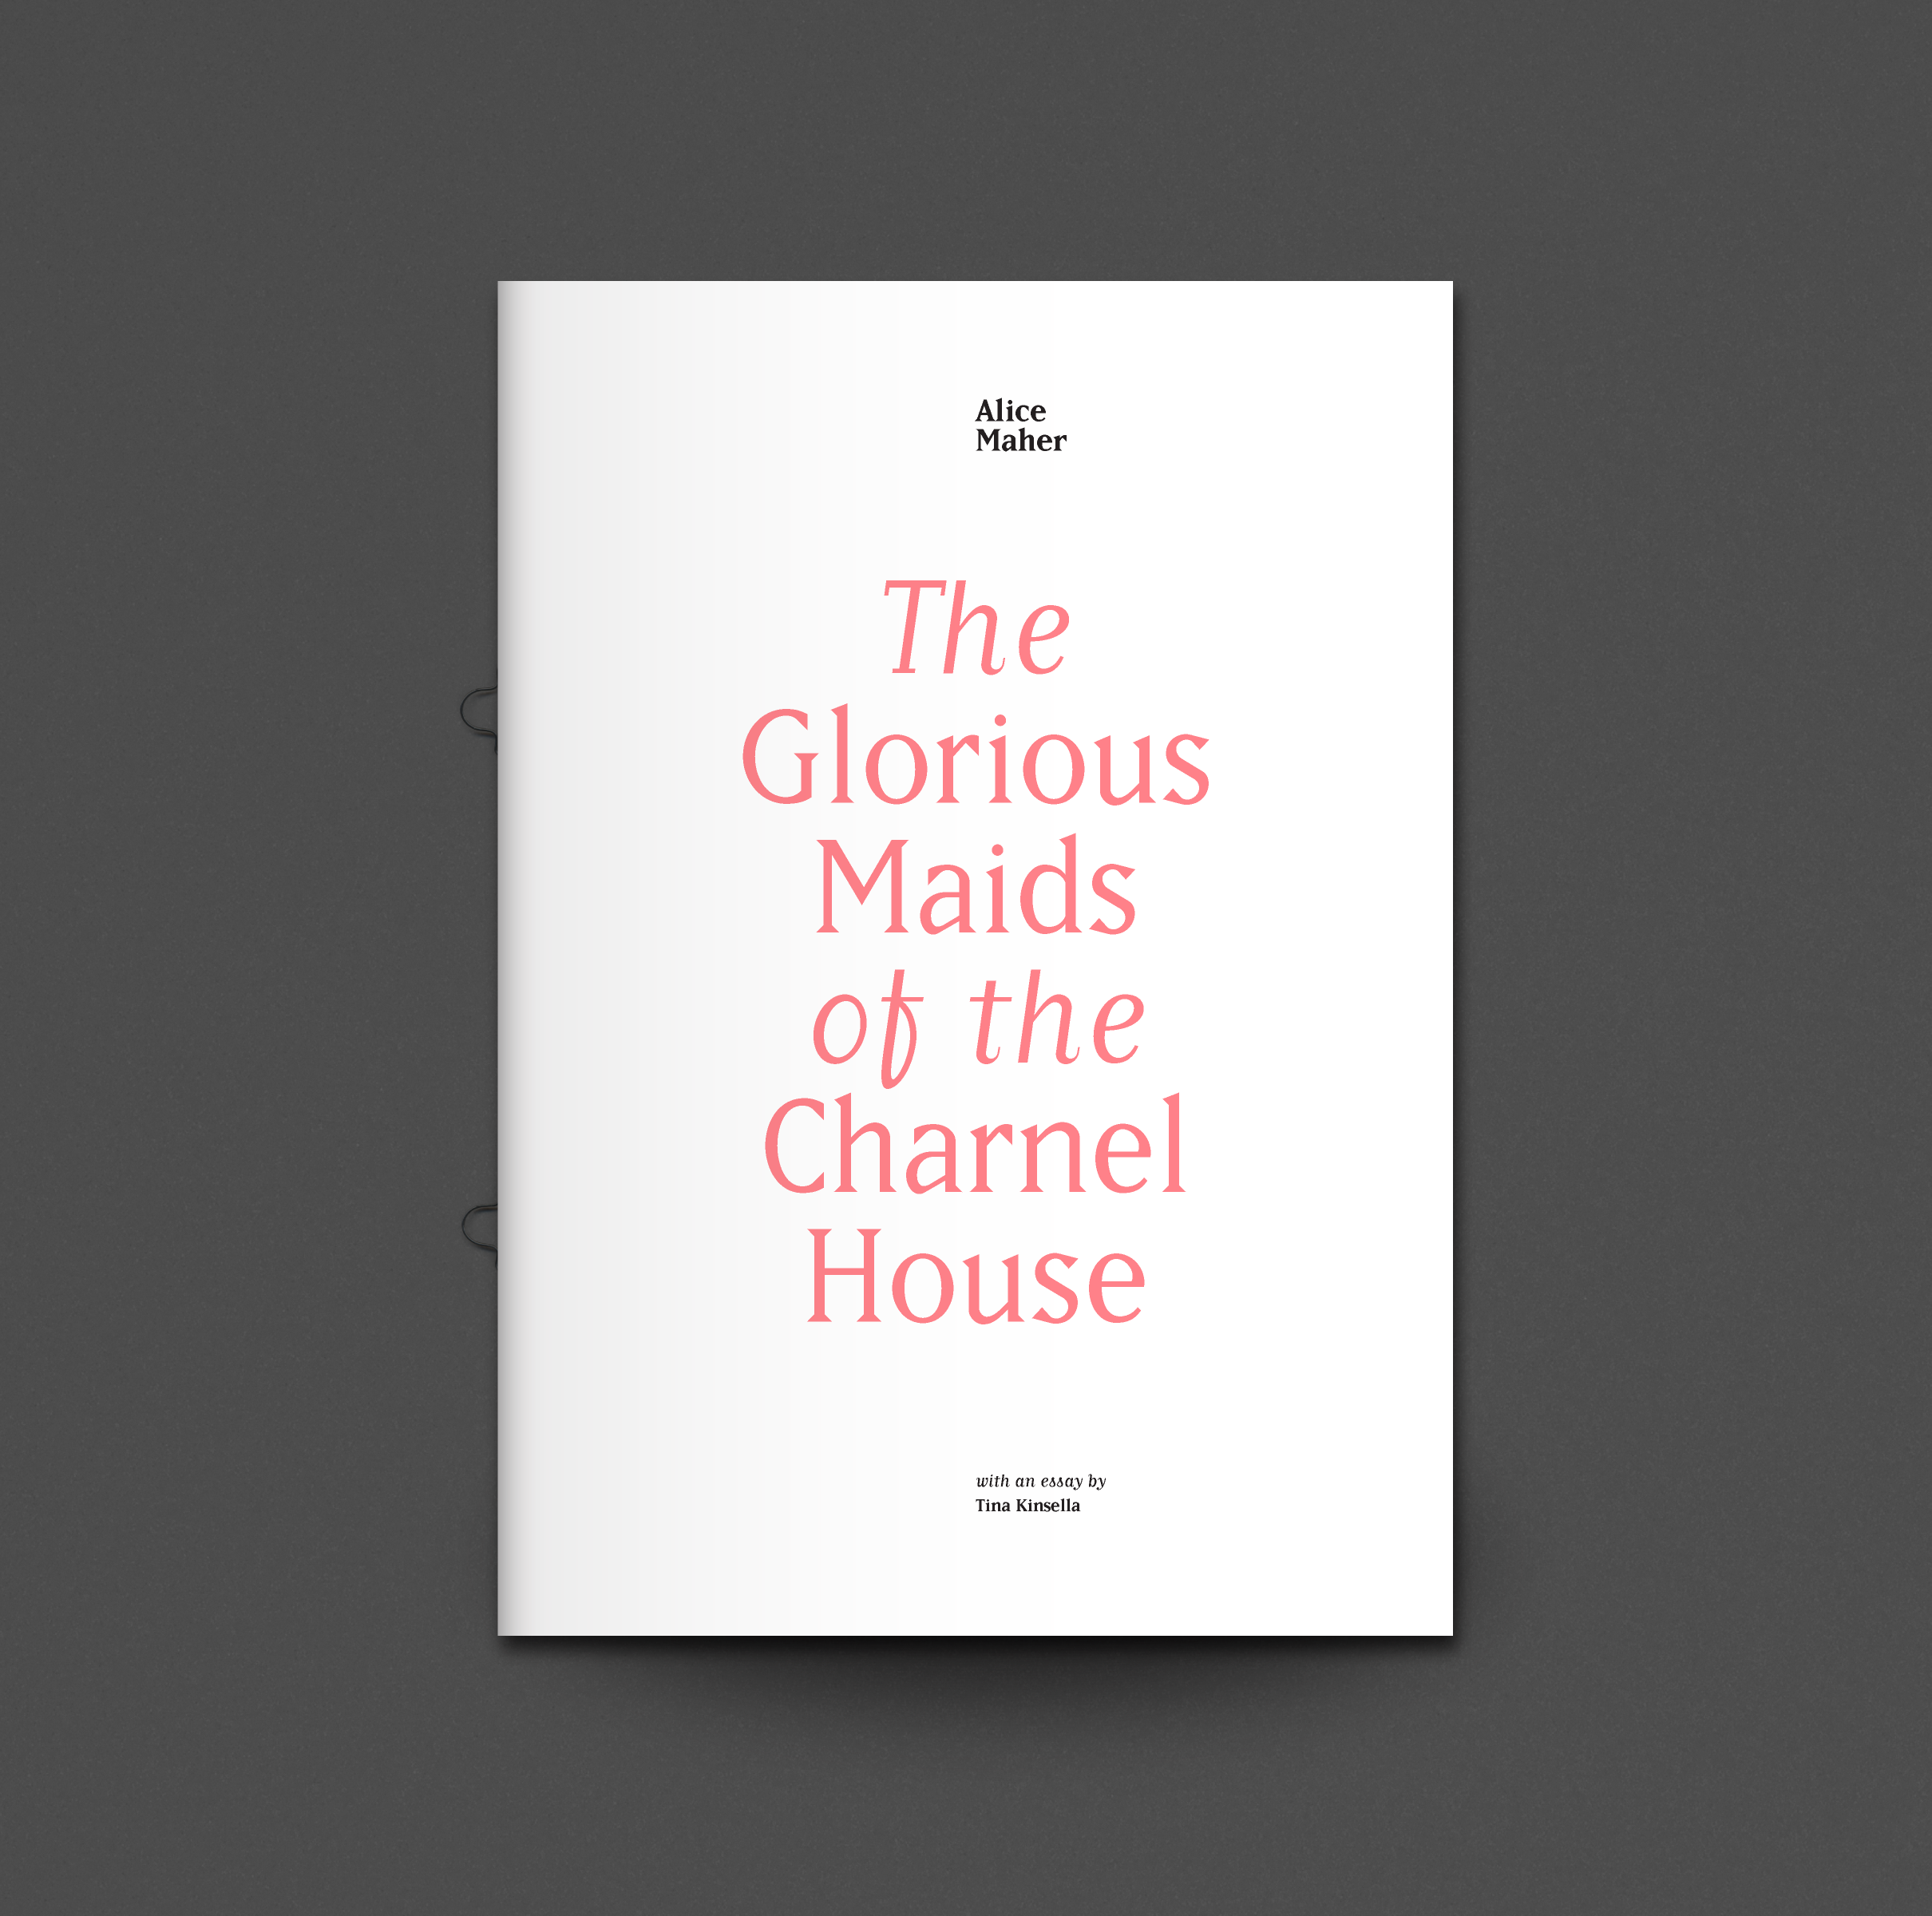 Cover image: The Glorious Maids of the Charnel House